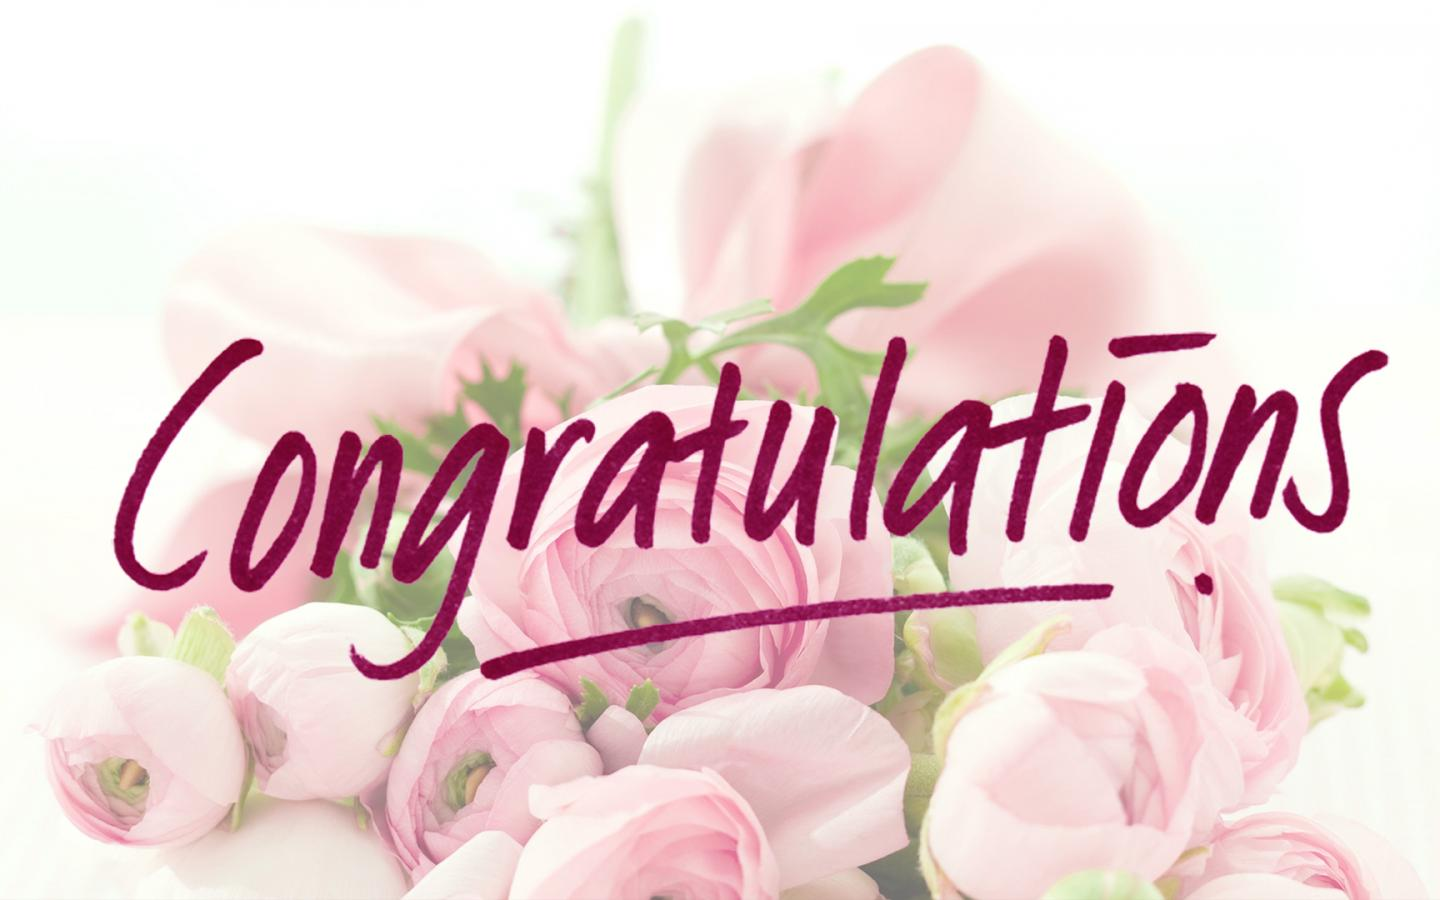 Congratulation Images Free with Flower - HD Wallpapers ...